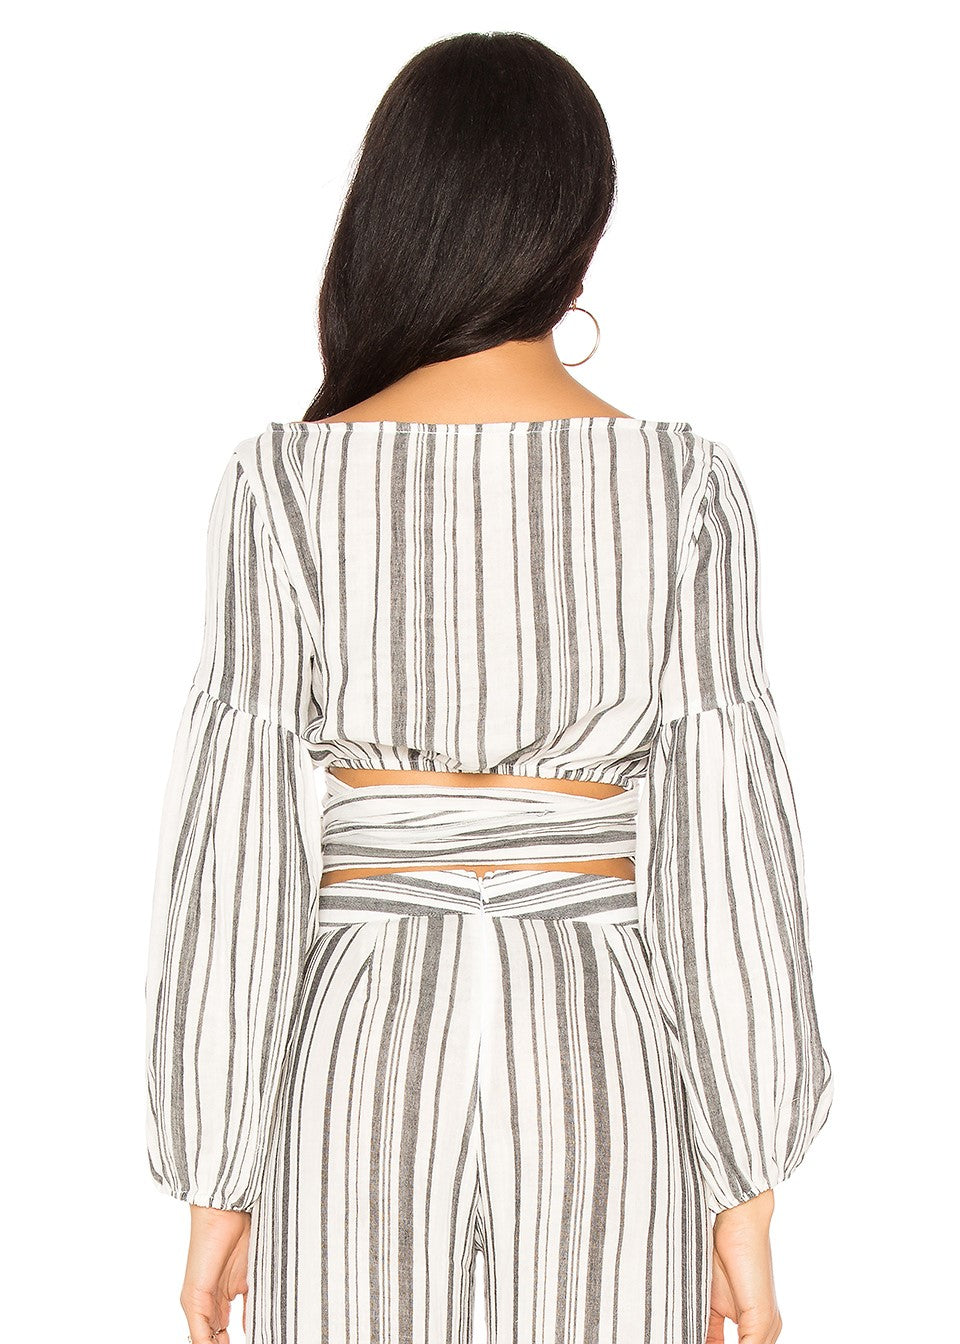 Jen's Pirate Booty Sirenuse Wrap Tie Top - Gray & White Stripes